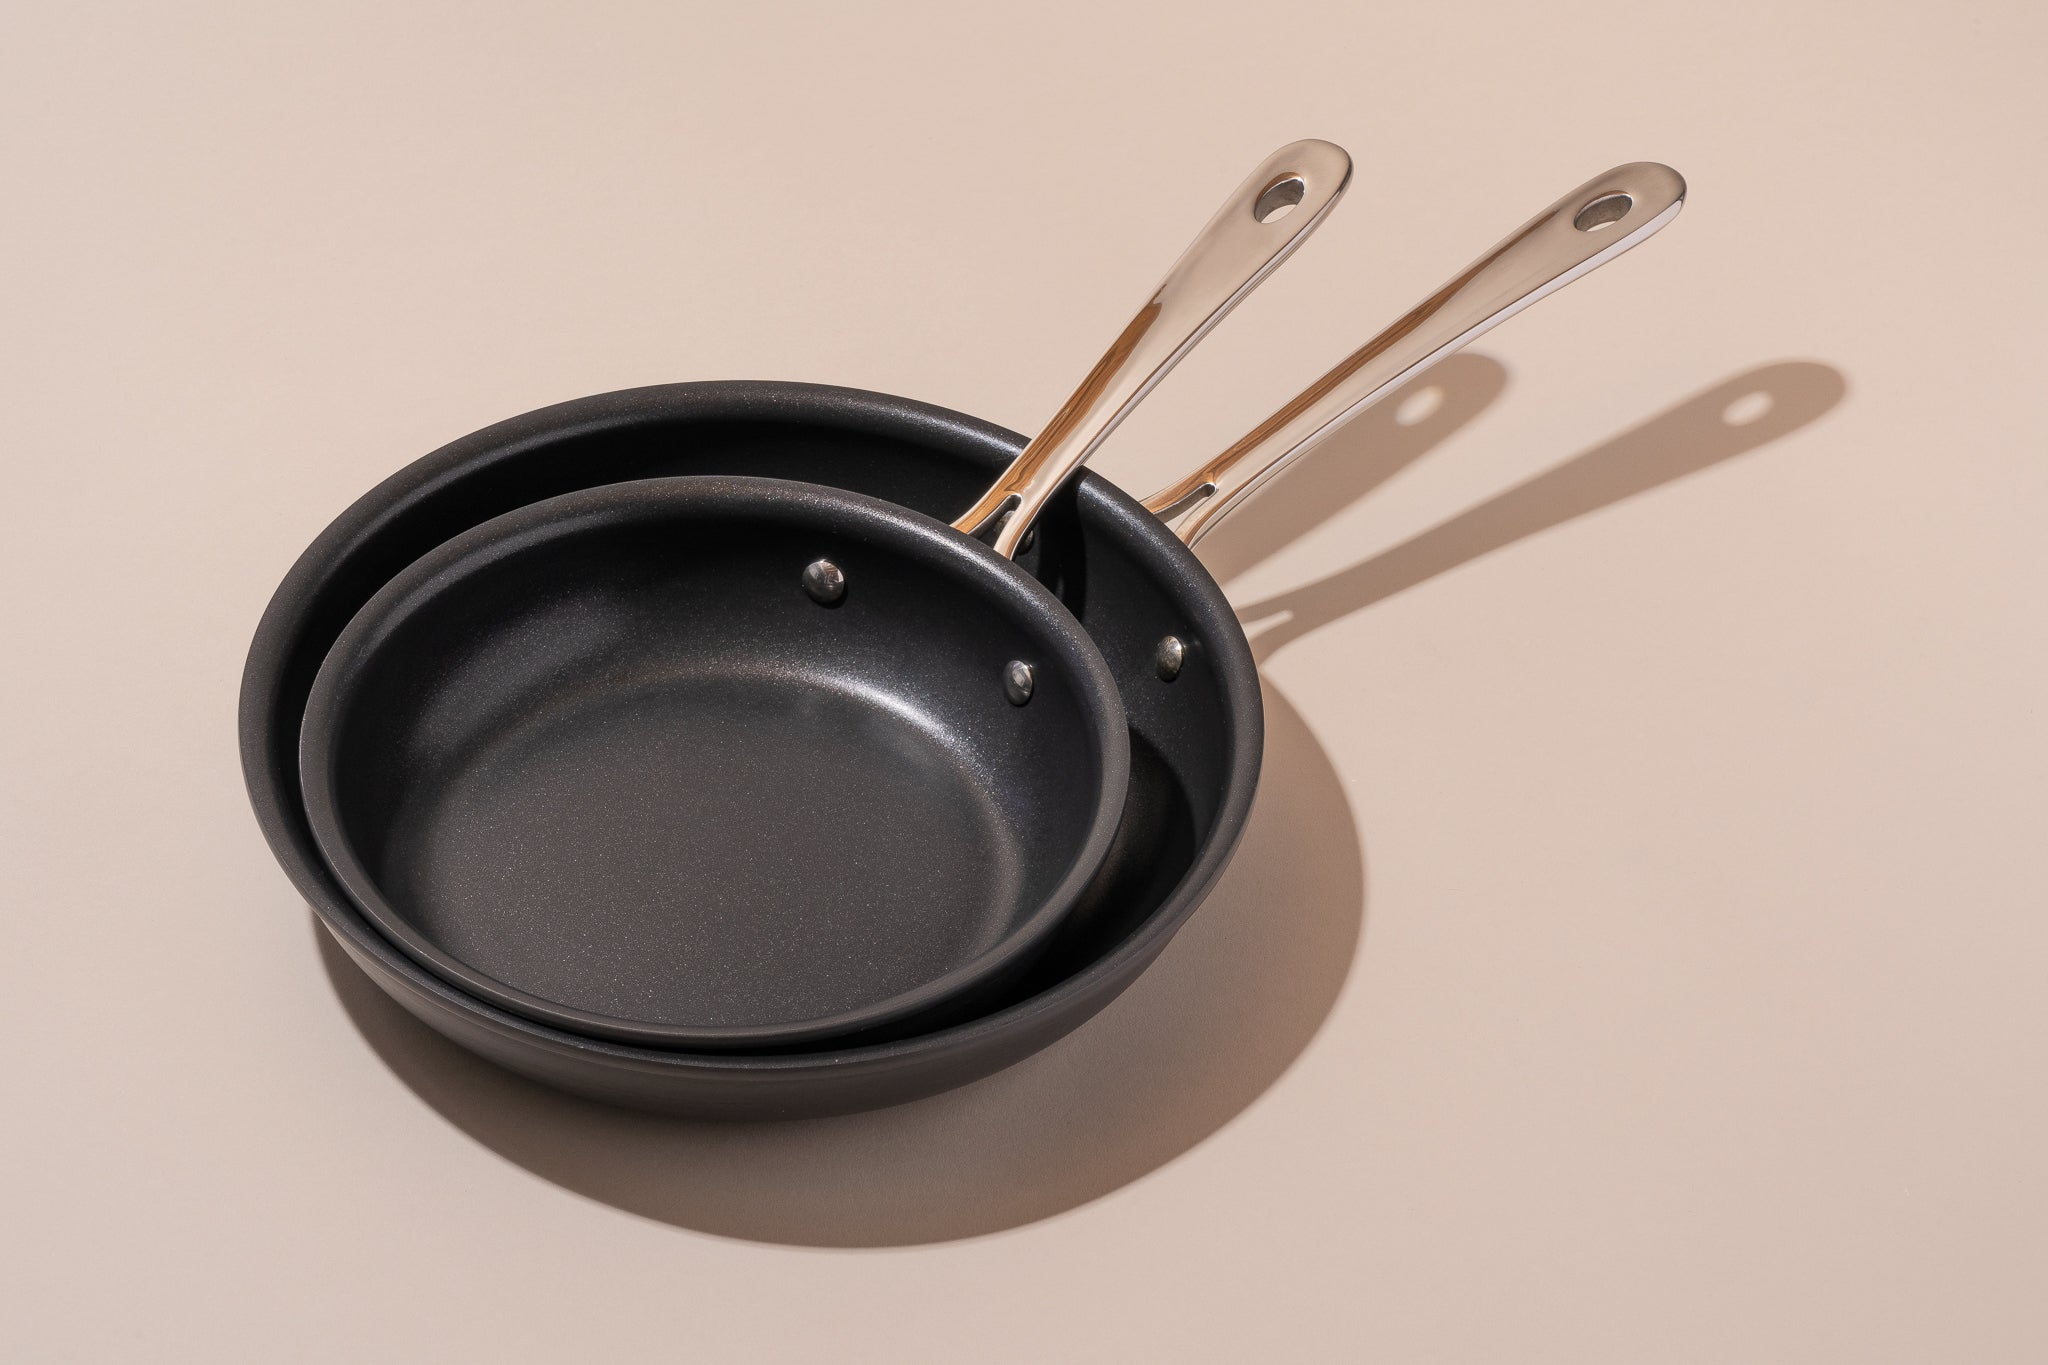 The Best Nonstick Pan for 2021